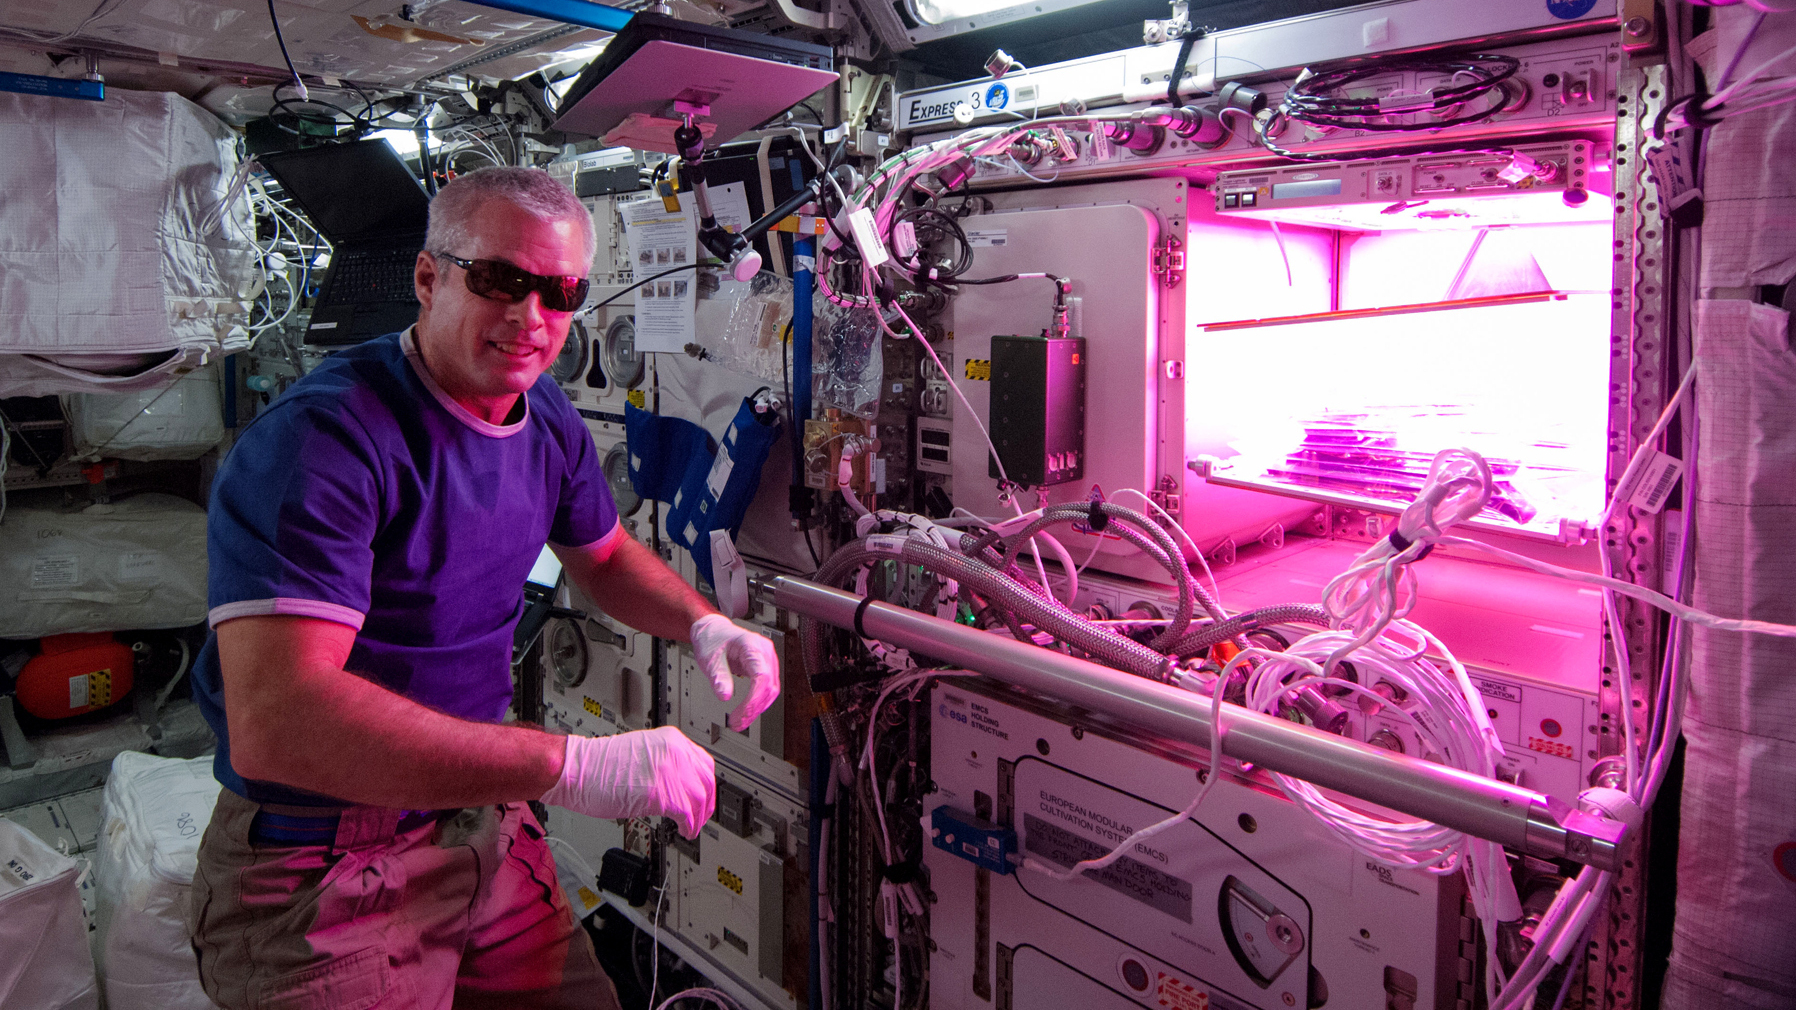 Astronauts will eat salad grown on the ISS 12